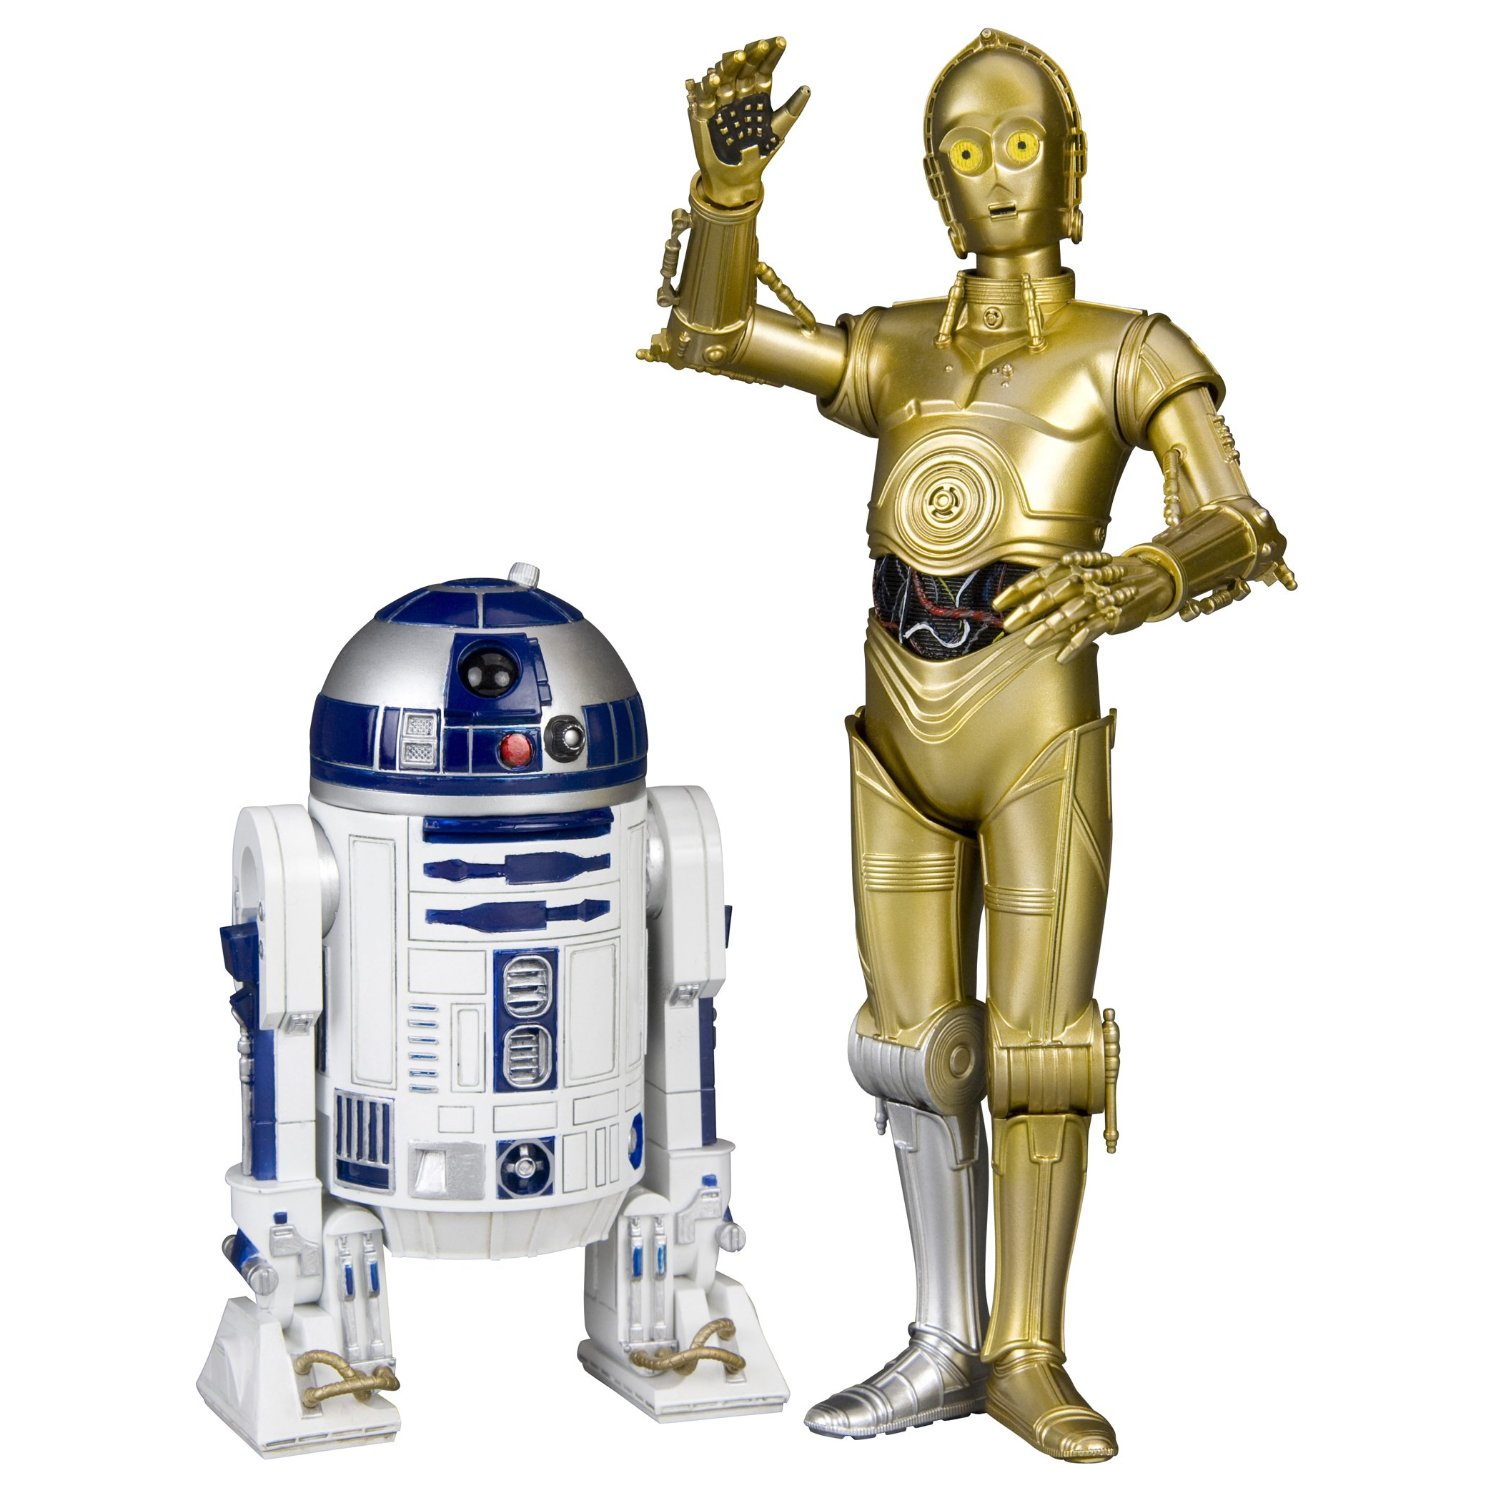 Figure Figure Figure C 3po And R2 D2 By Star Wars Lego Star Wars R2d2 Coloring Pages